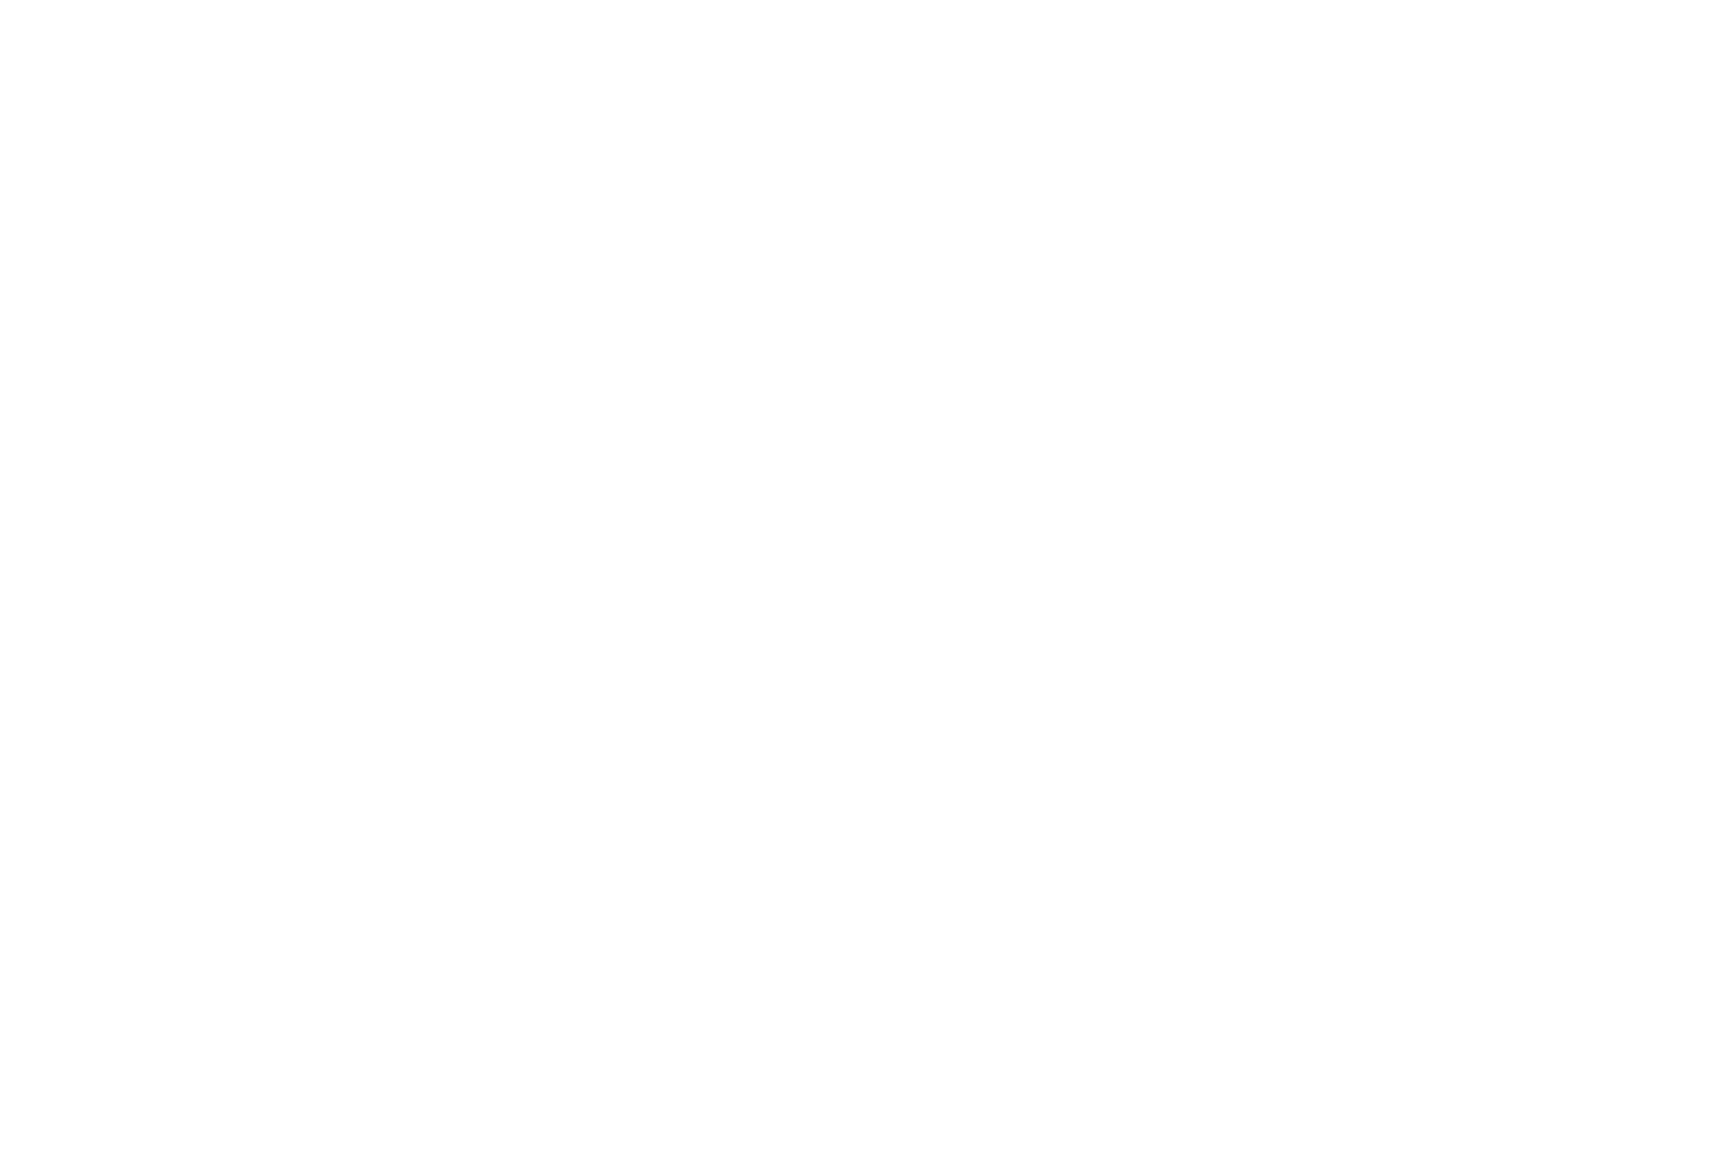 MICA Film and Animation Festival